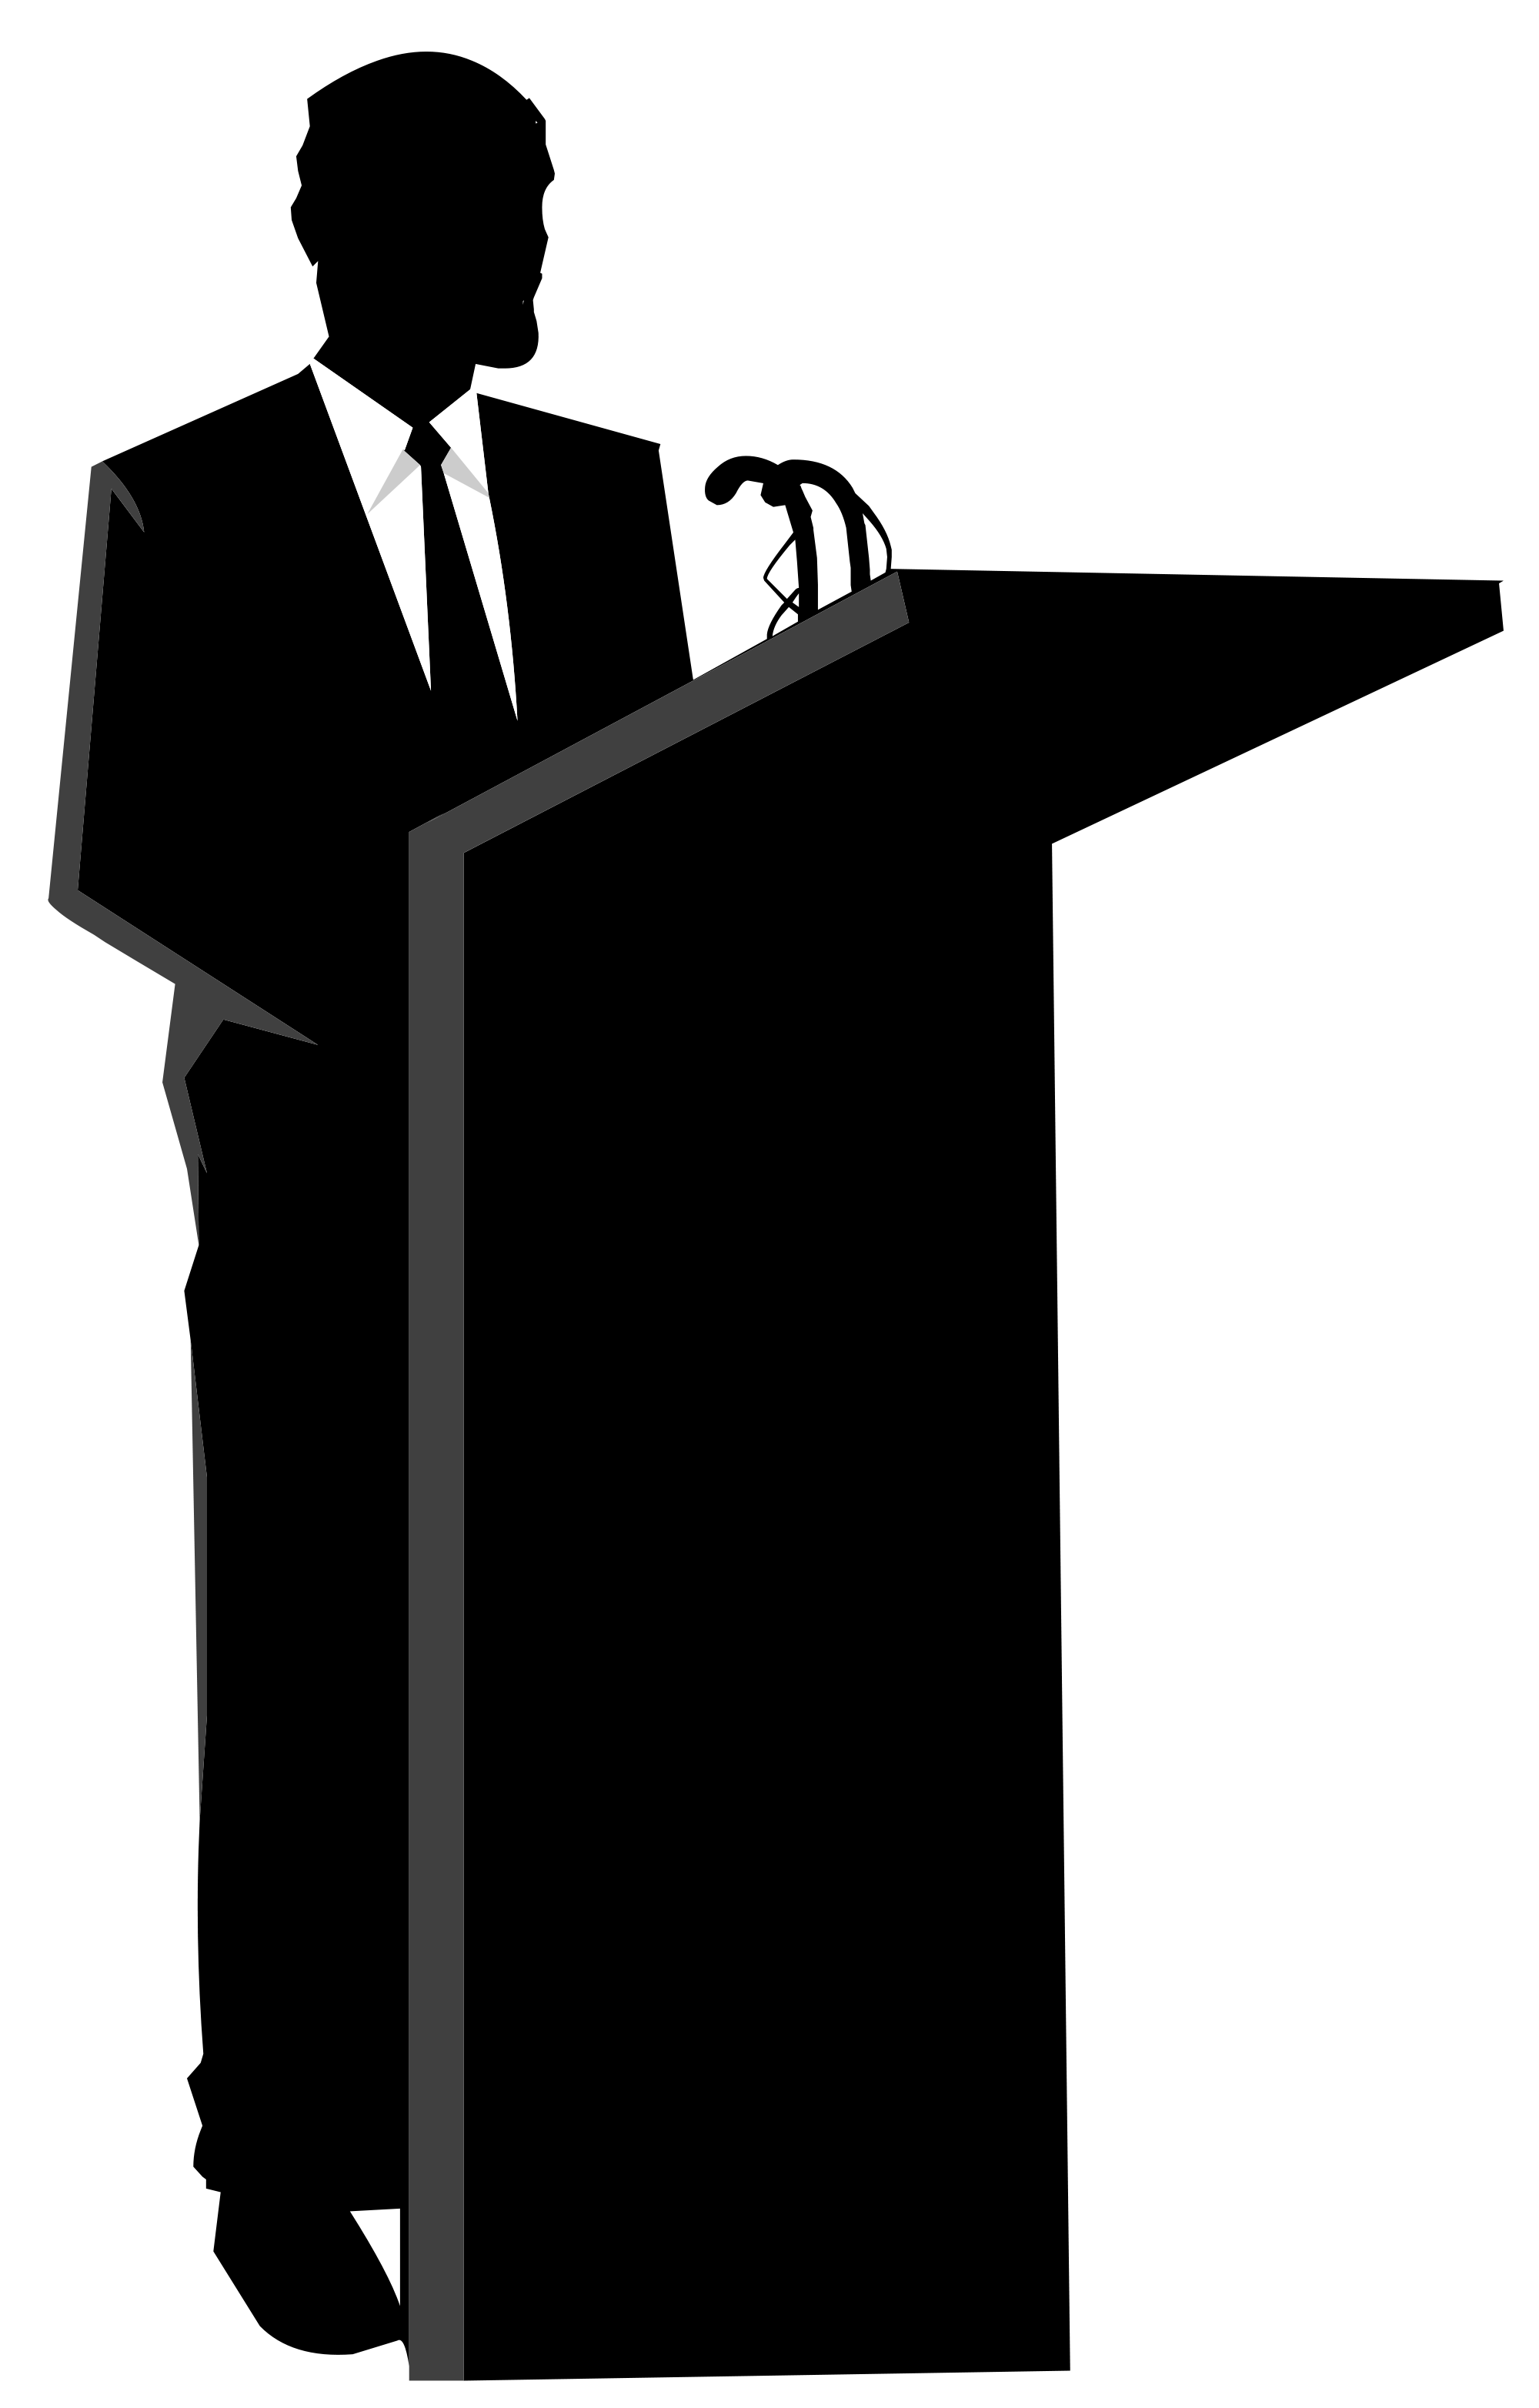 Politician silhouette at getdrawings. Lady clipart speaker